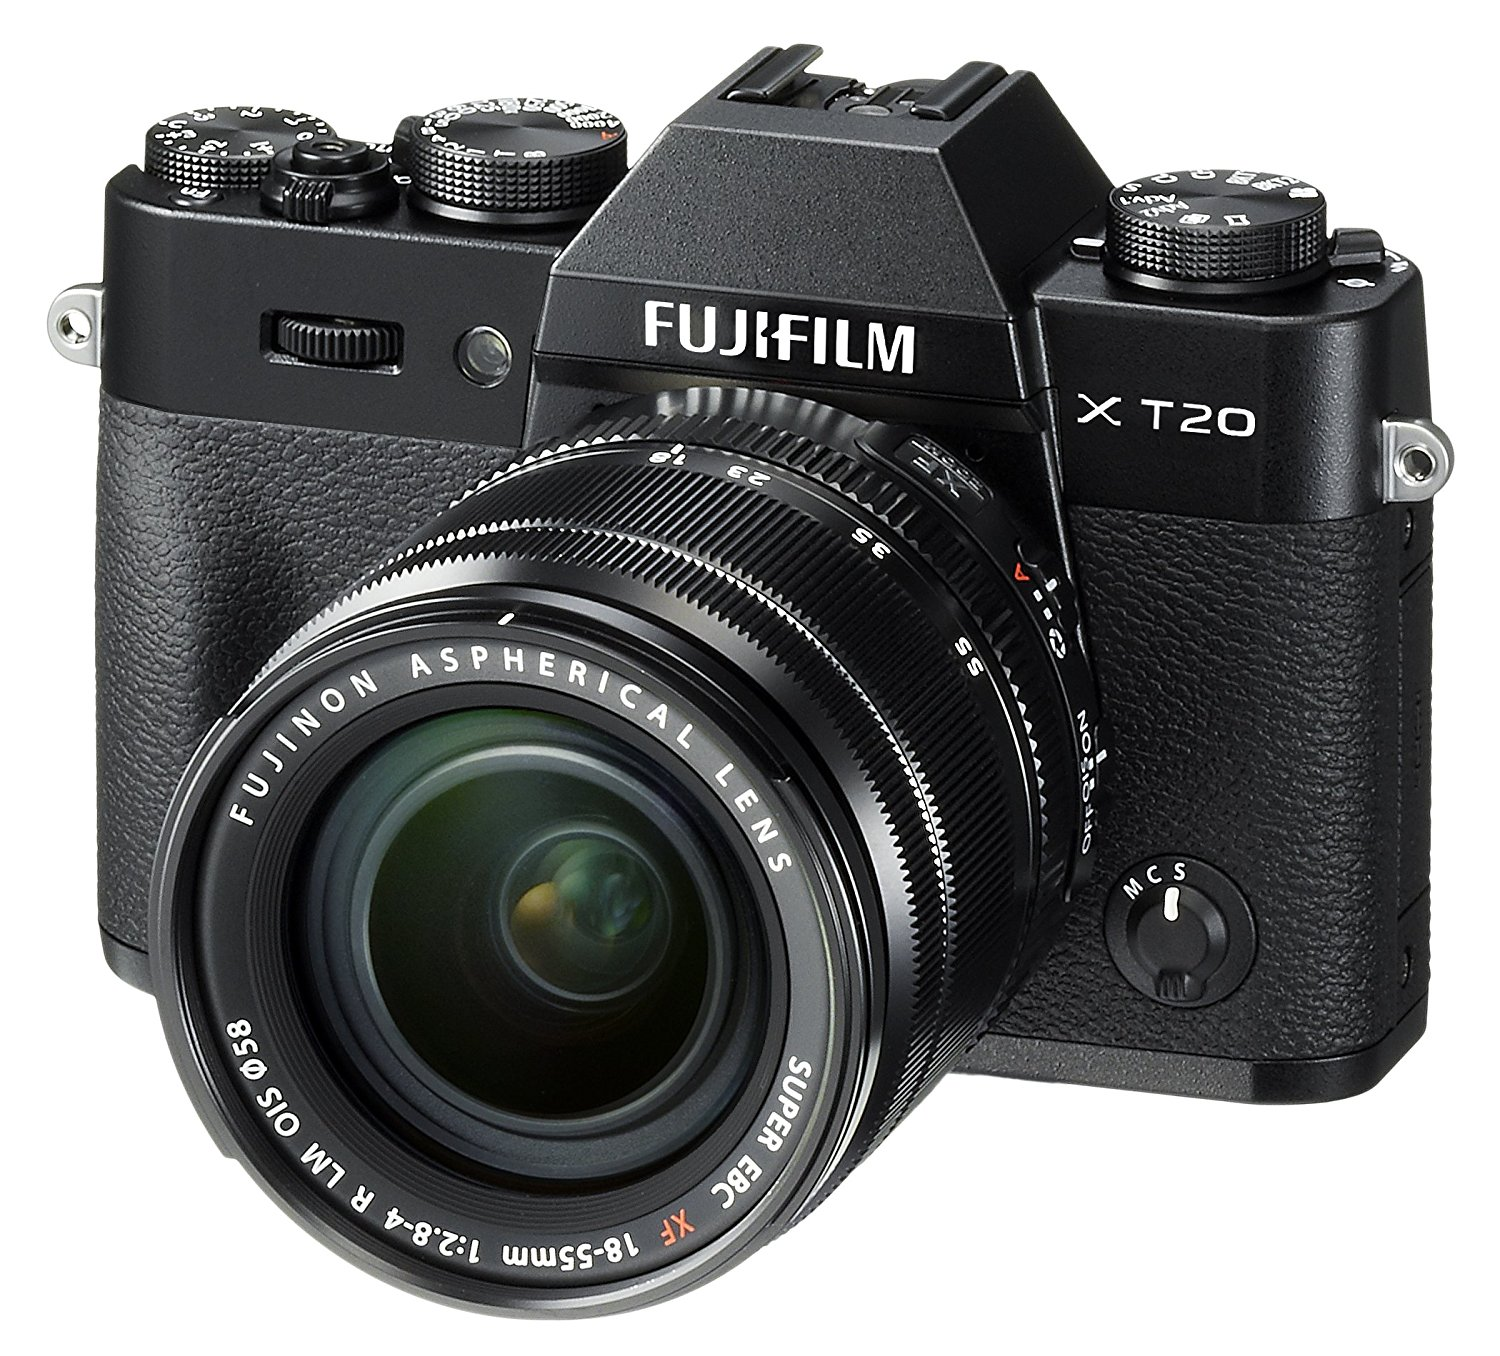 <span style='color:#dd3333;'>Fujifilm X-T20  and XF 50mm F2 R WR Lens In Stock &#038; Shipping</span>